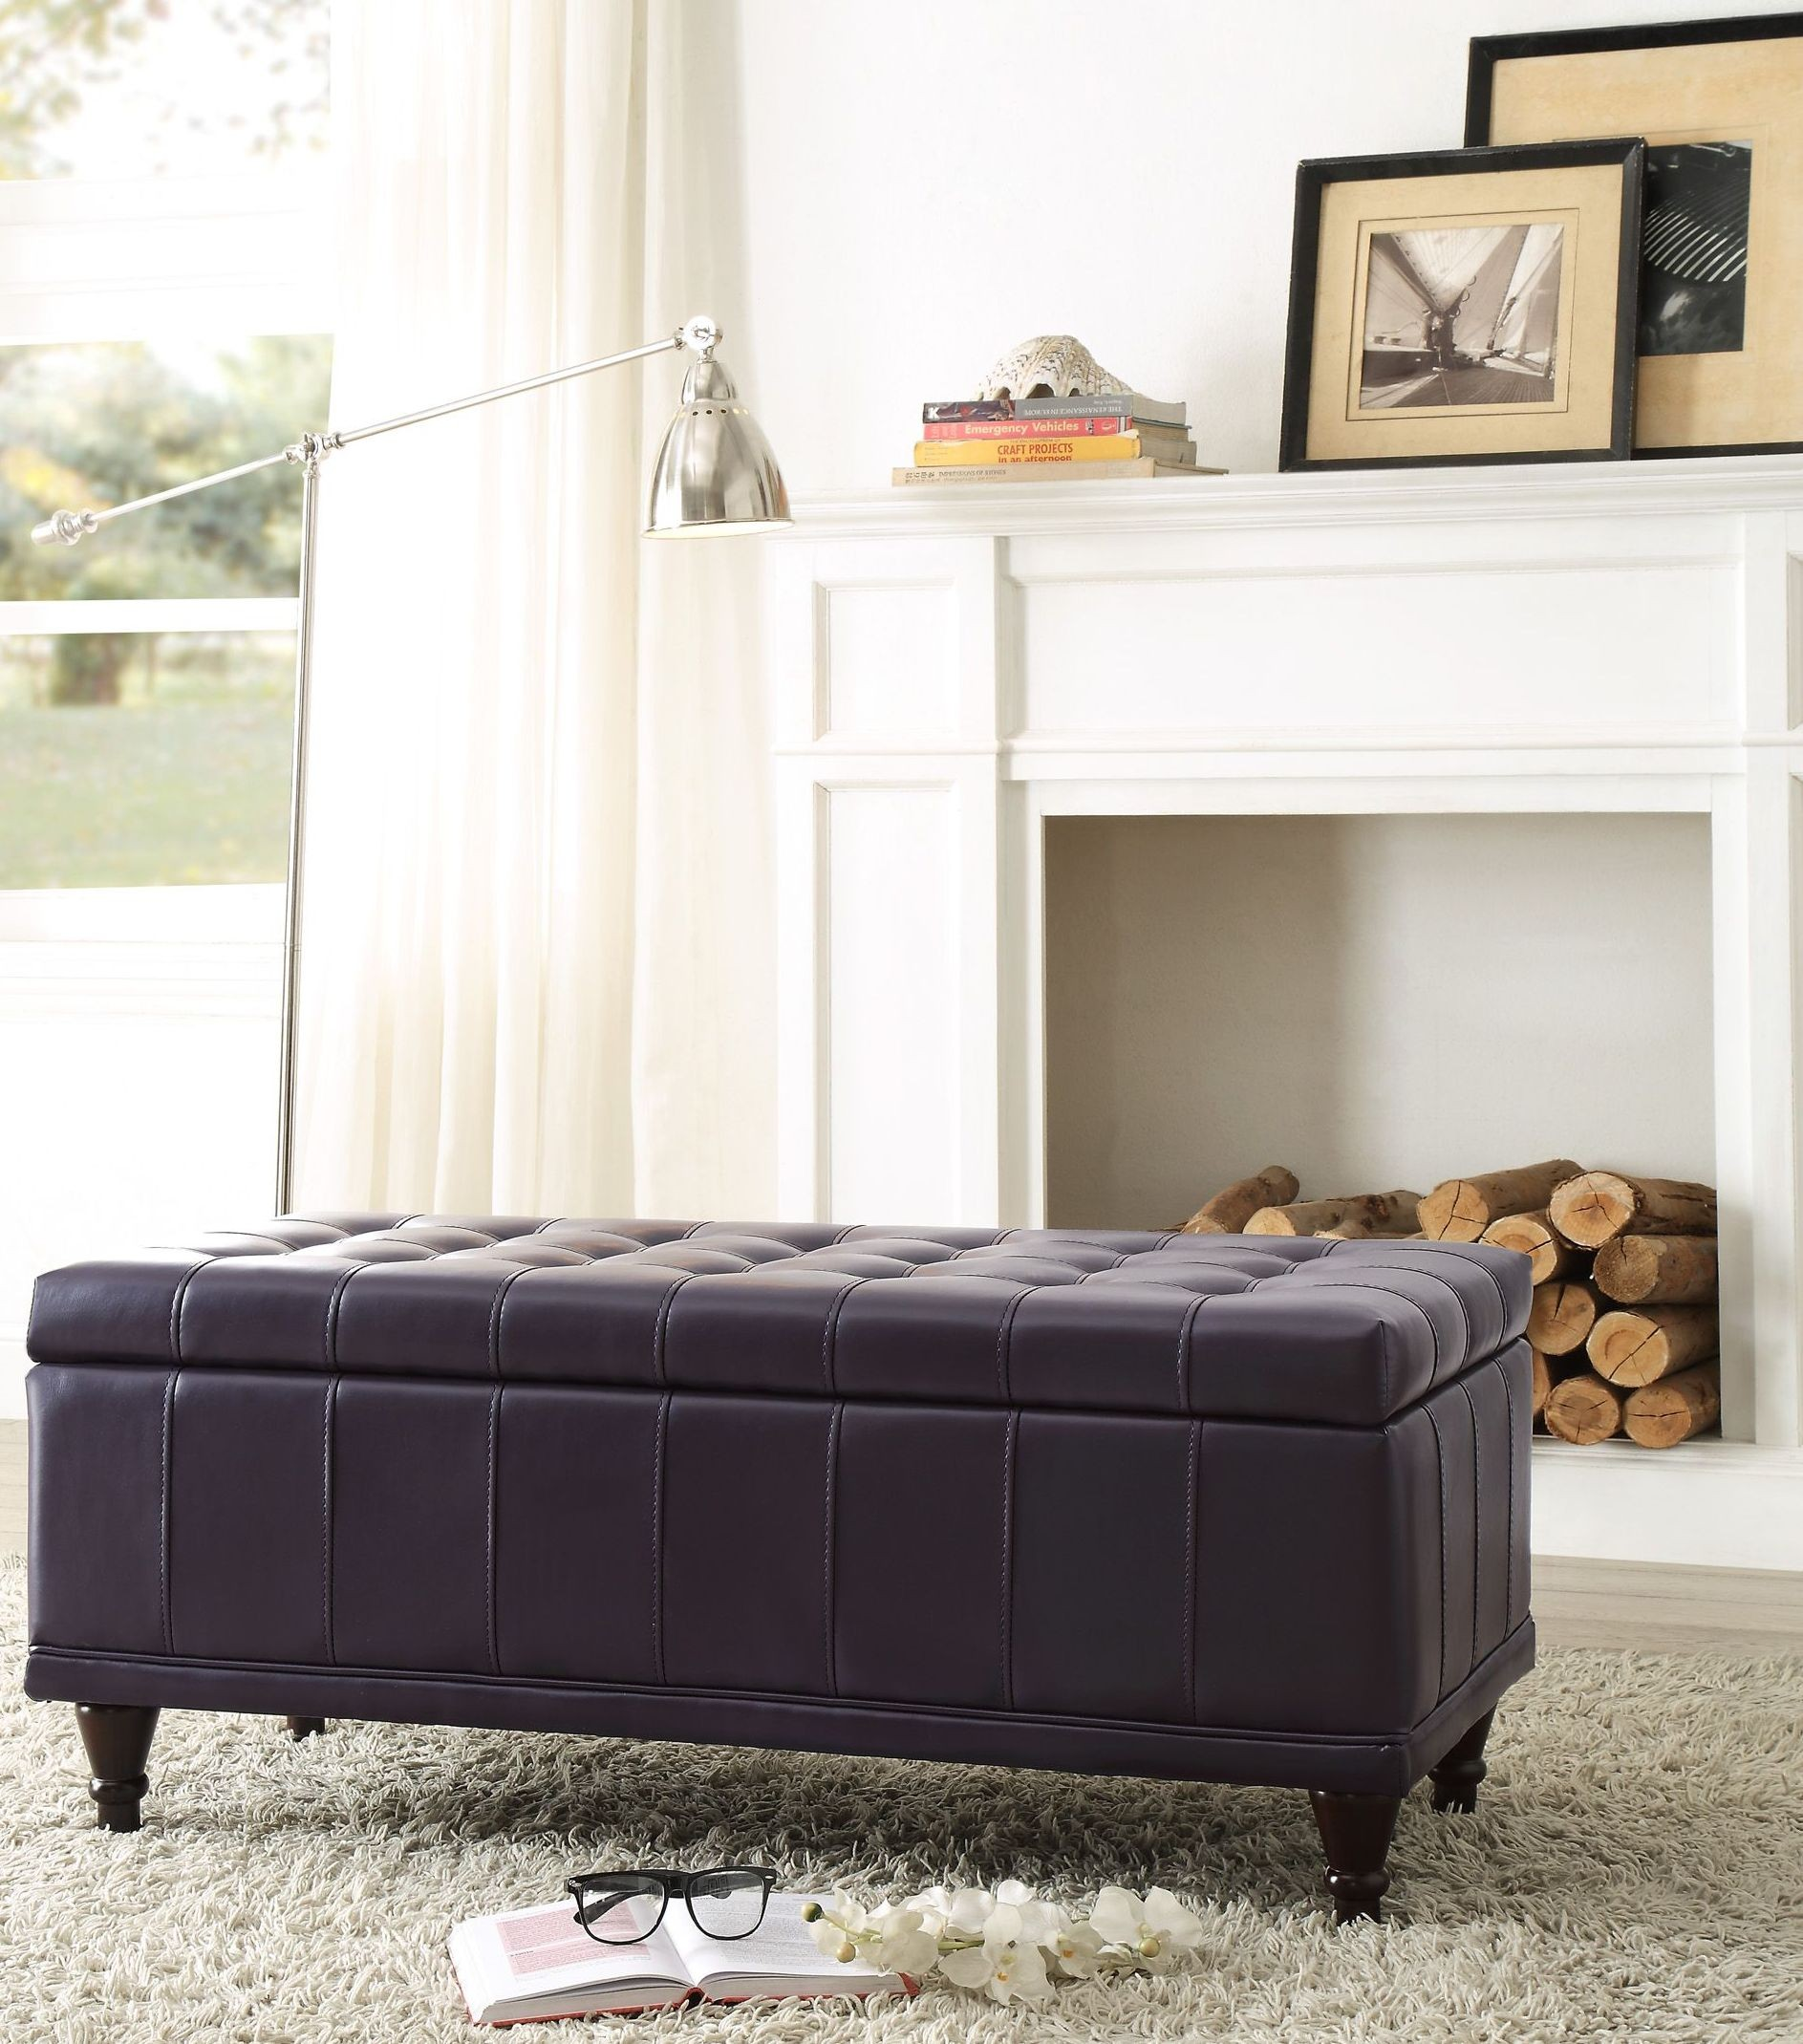 Afton Purple Lift Top Storage Bench From Homelegance